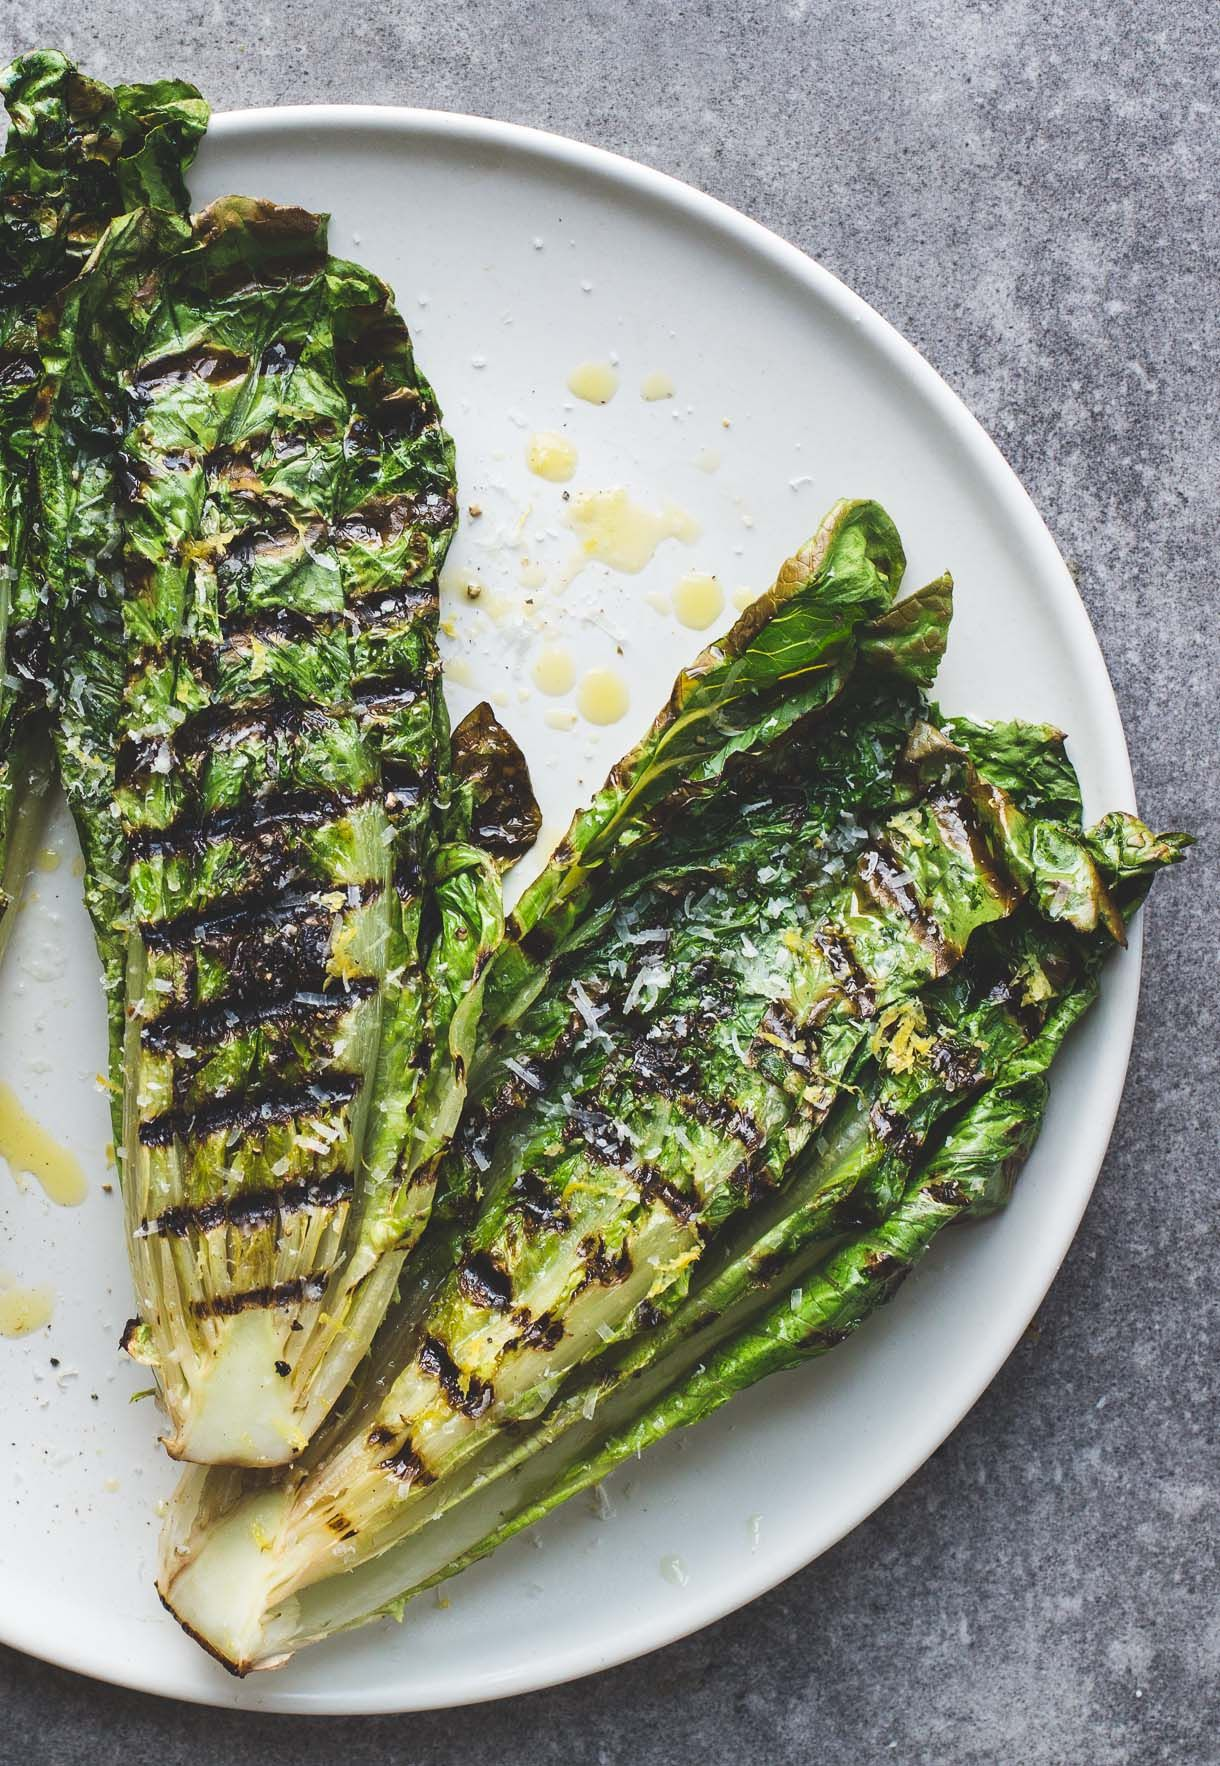 How to grill lettuce simple grilled romaine salad recipe video food simple italian grilled romaine salad easy vegetarian grilling recipe forumfinder